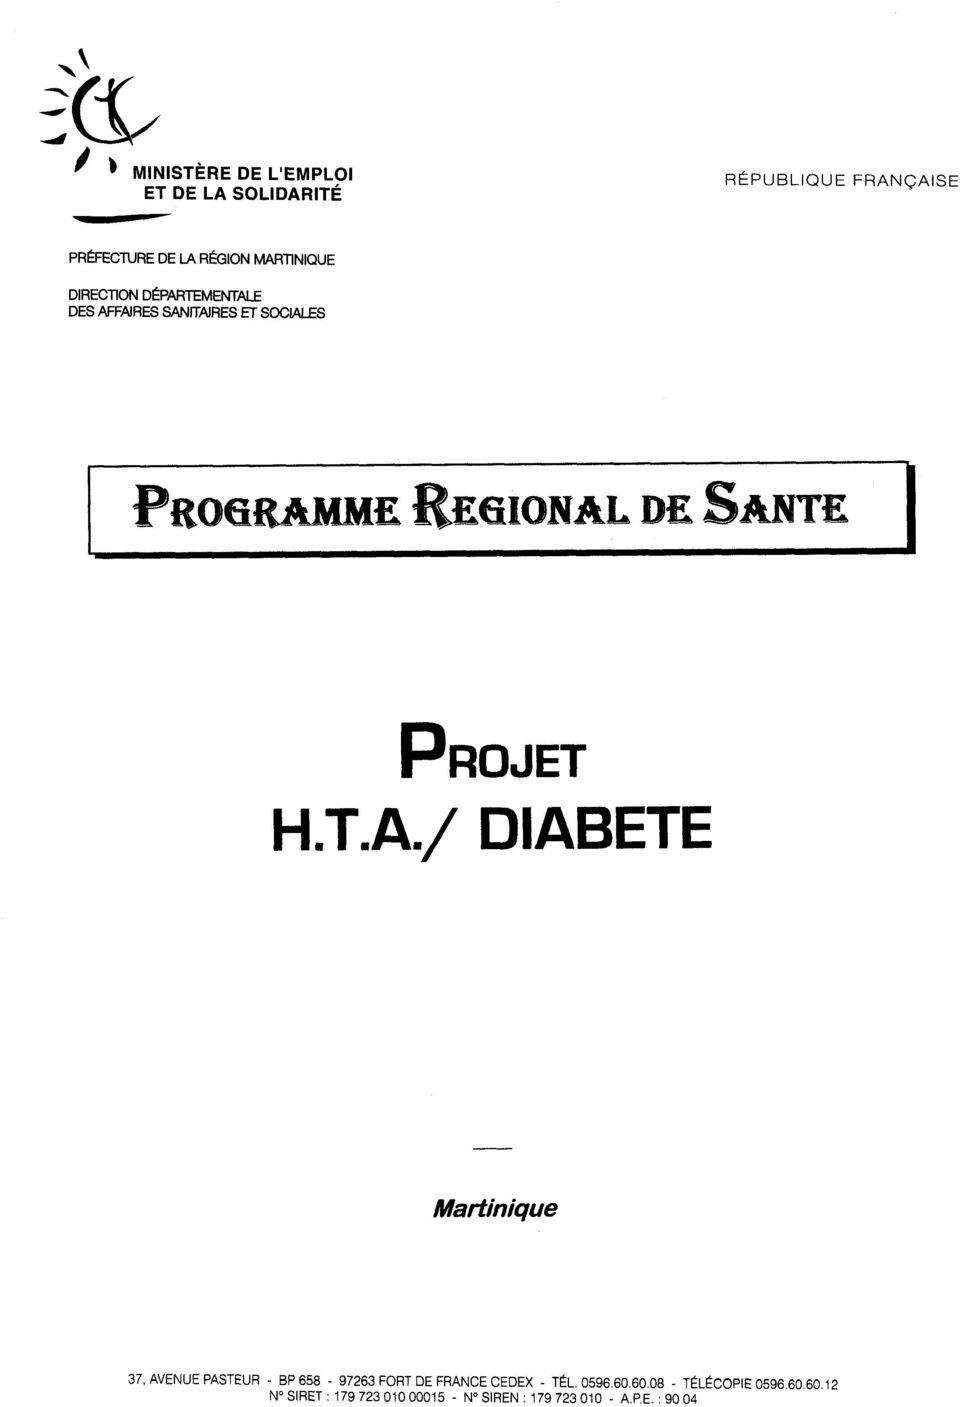 T.A./ DIABETE 37, AVENUE PASTEUR - BP 656-97263 FORT DE FRANCE CEDEX - TÉL. 0596.60.